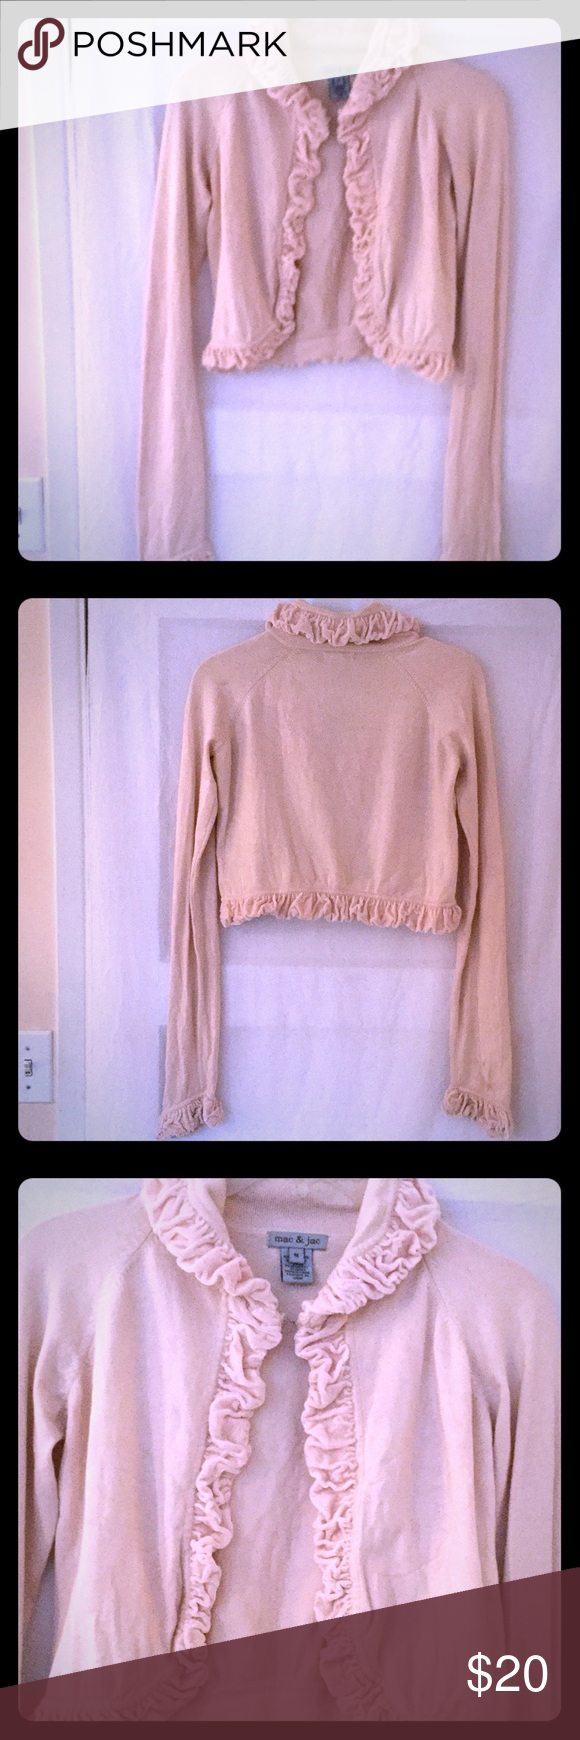 "mac & jak Long Sleeved Sweater Feminine ruffled velvet trimmed short body (18"") sweater. 80% silk, 15% nylon, 5% spandex. Sleeve (28"") length. 4th pic shows a 1 cm orangish spot (had to search to find) ~ may be hand washed or dry cleaned. Terrific, stylish jacket; day & evening ready! Mac & Jac Sweaters"